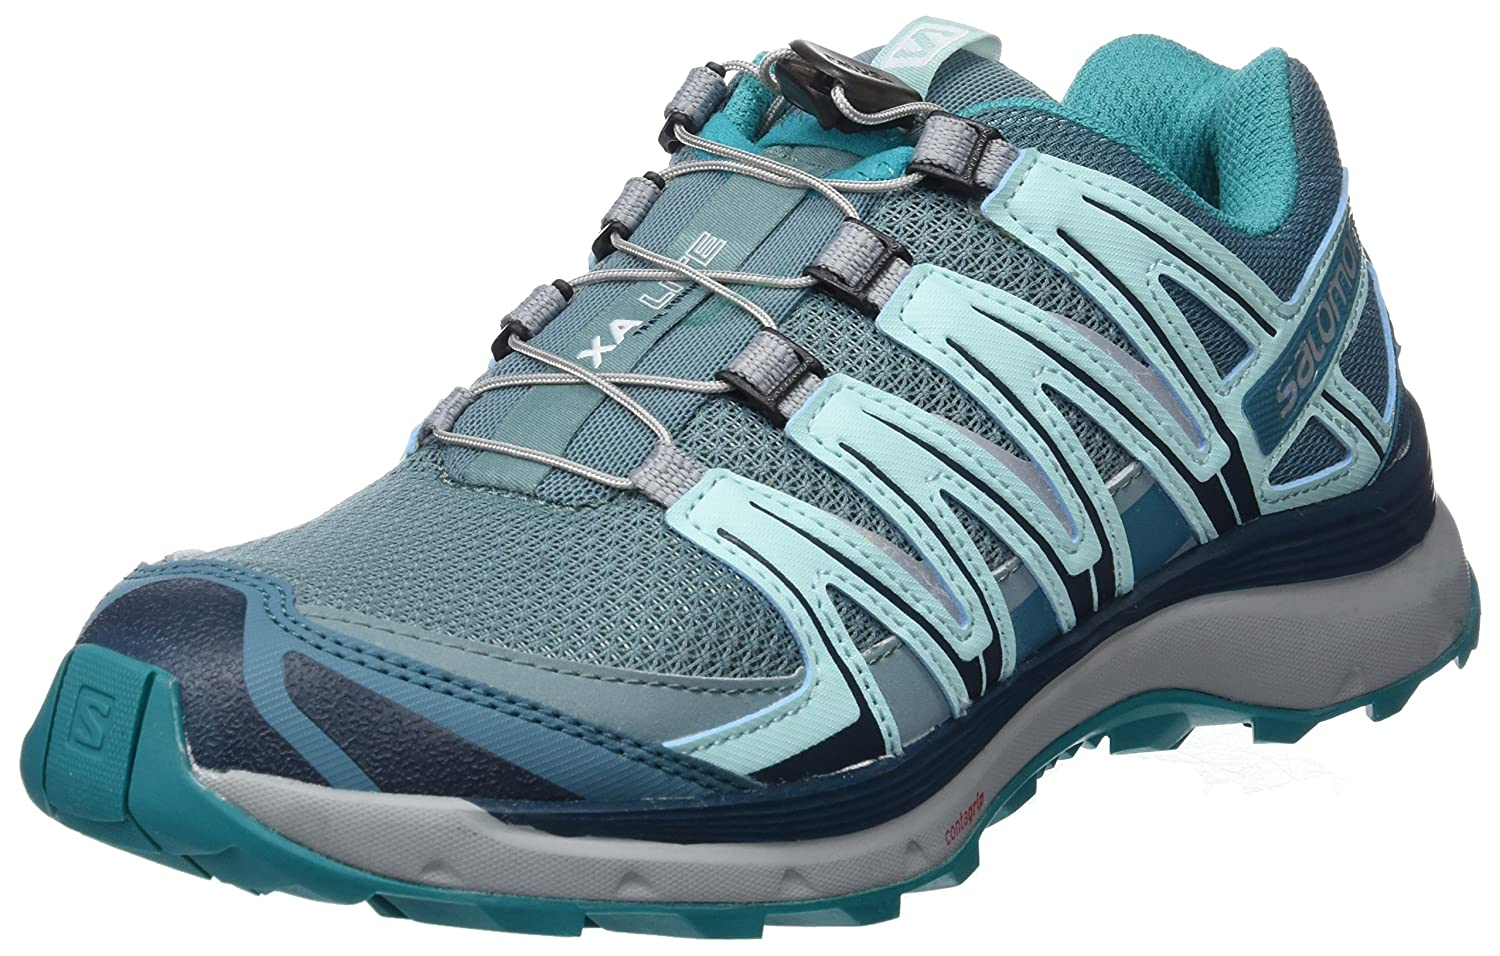 Salomon Damen XA Lite Trailrunning Schuhe, SynthetikTextil